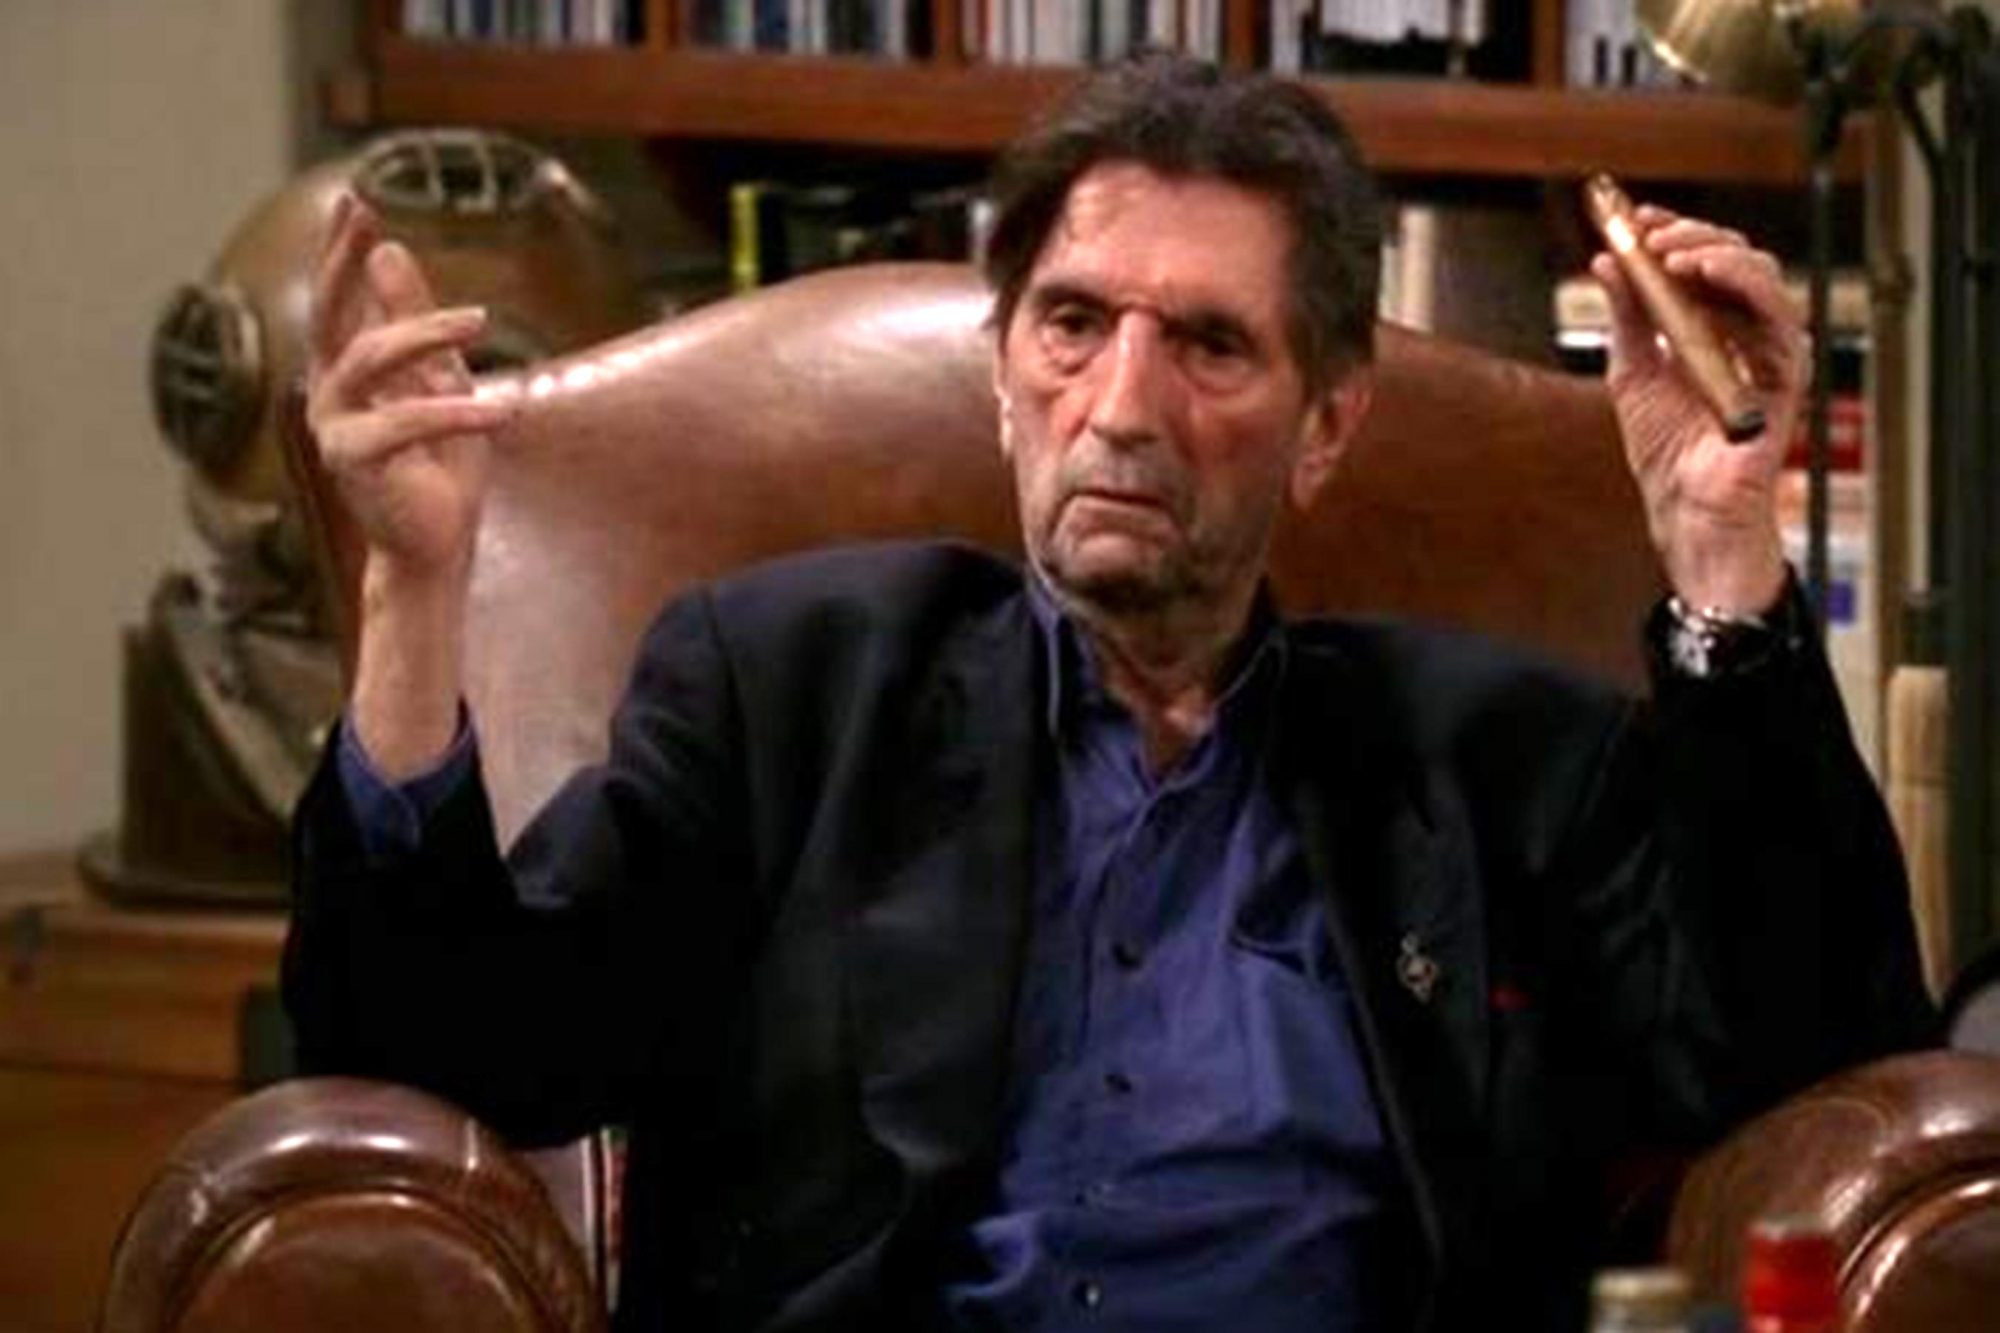 Harry Dean Stanton on Two and a Half Men CR: CBS